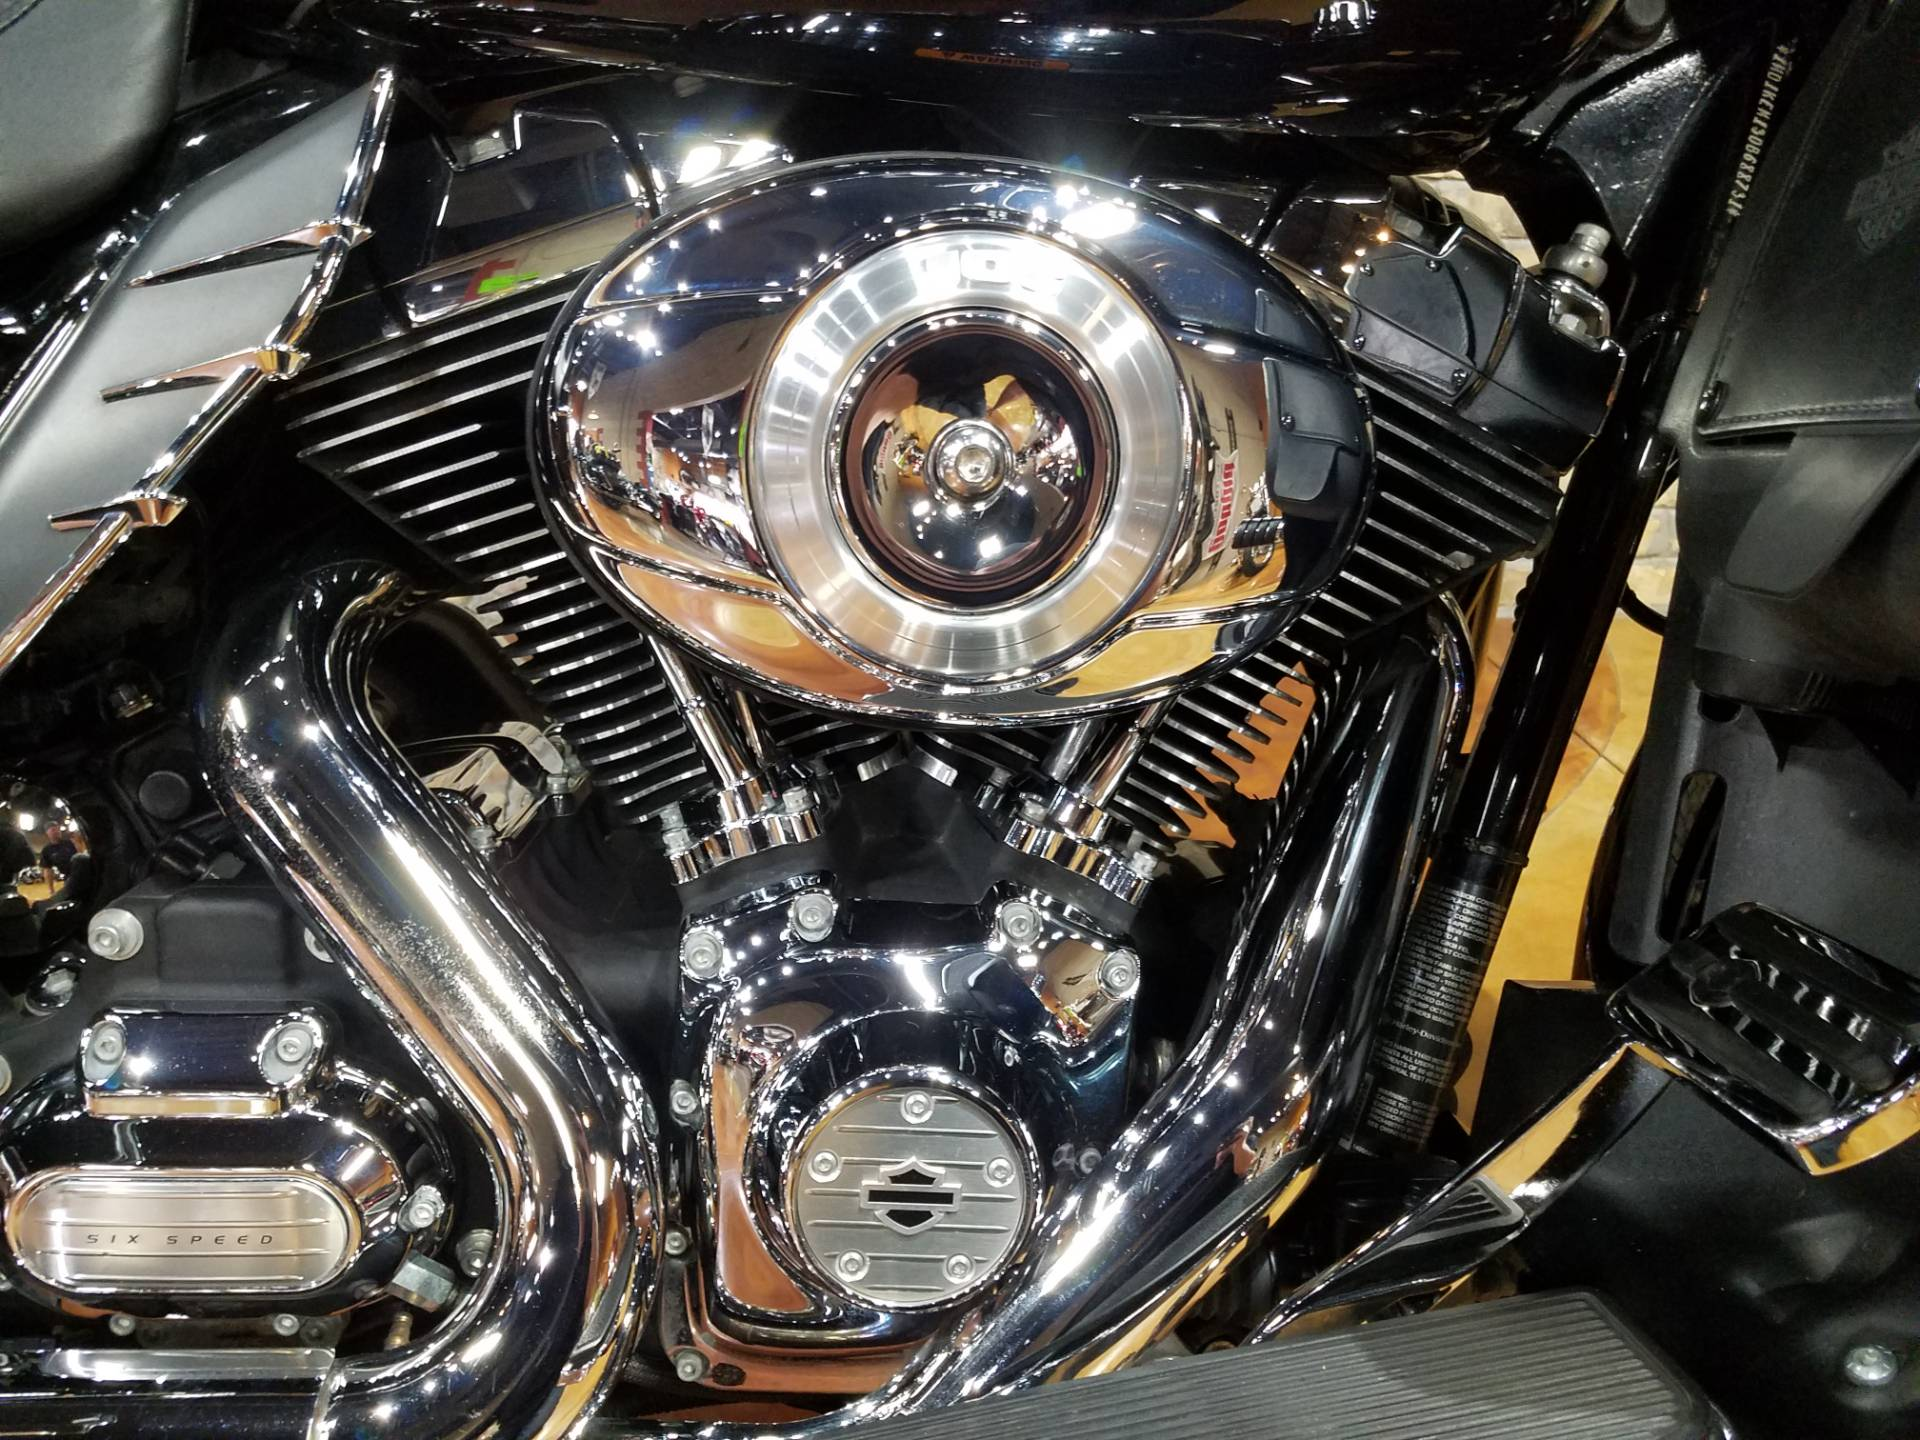 2013 Harley-Davidson Electra Glide® Ultra Limited in Big Bend, Wisconsin - Photo 51